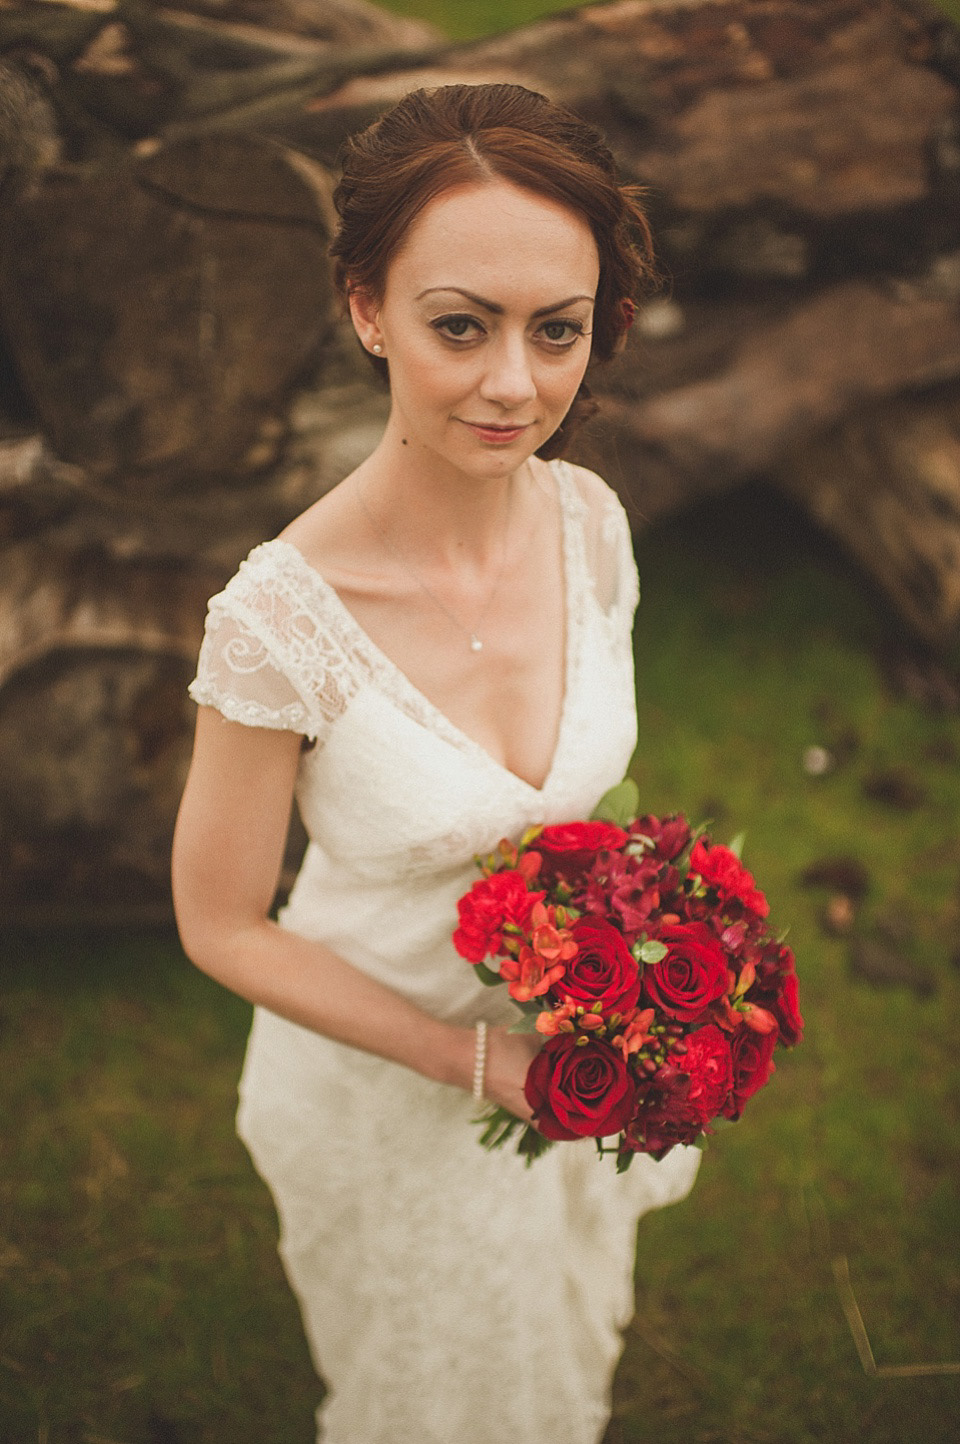 red roses in her hair for a relaxed and rural farm wedding   love